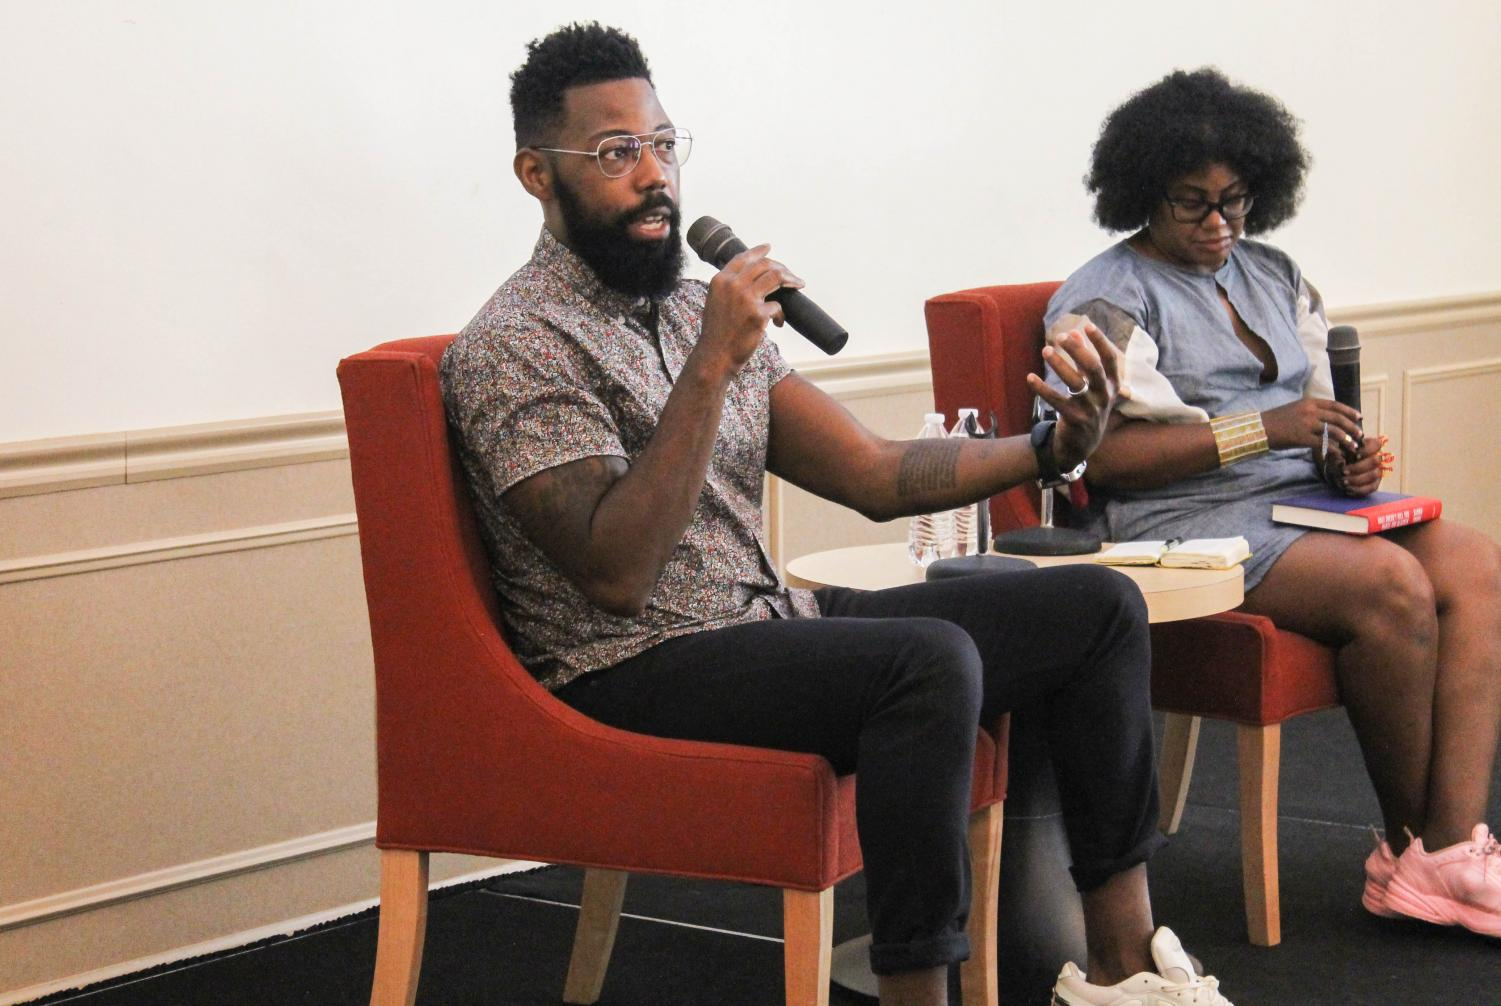 """Damon Young speaks in Lawrence Hall 200. He discussed his new book """"What Doesn't Kill You Makes You Blacker: A Memoir in Essays,"""" which takes a look at his experiences as a black man in America."""